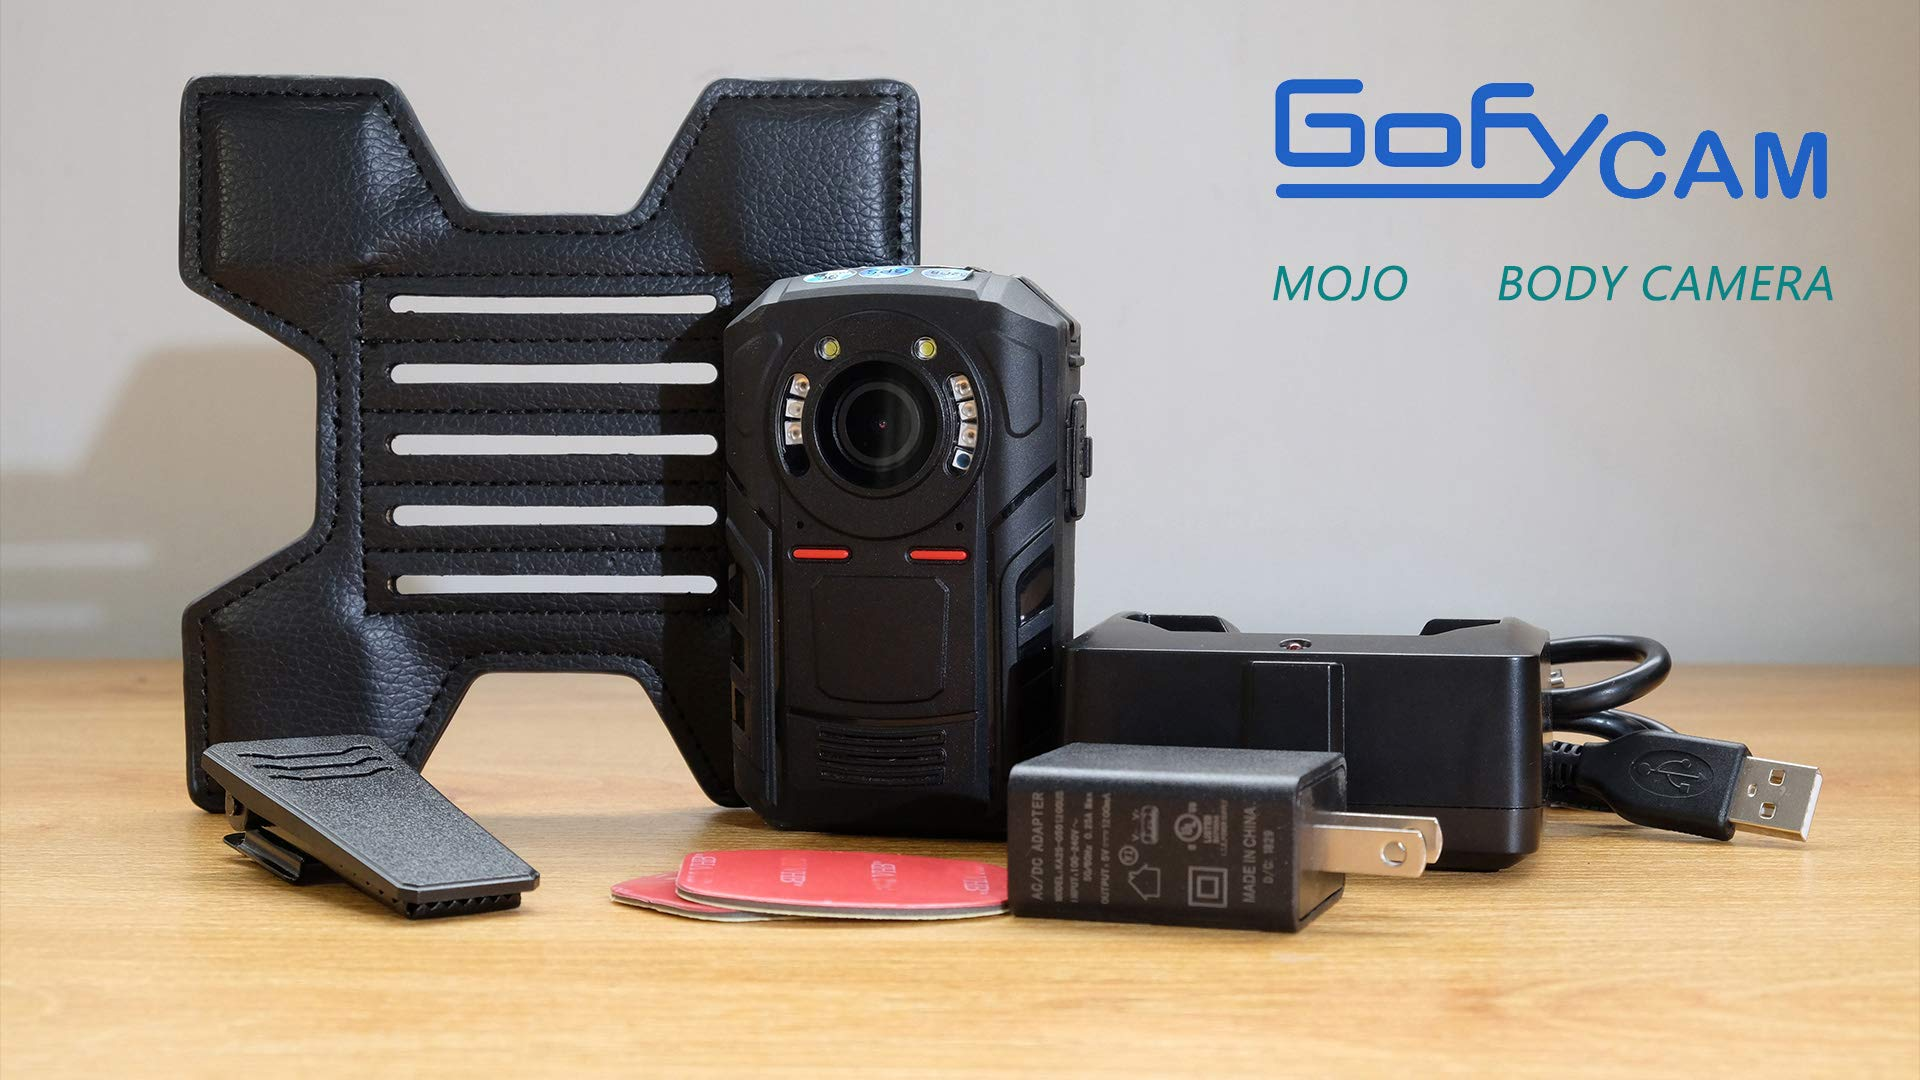 Mojo Police Body Camera with 1440P, H.265,140° Wide Angle Lens,12+ Hour Battery Life at 1080p,Low Light Recording at 0.1 Lux, Pre-Buffering up to 30 Sec,Compact and Lightweight Body Worn Camera-32GB by GoflyCam (Image #5)